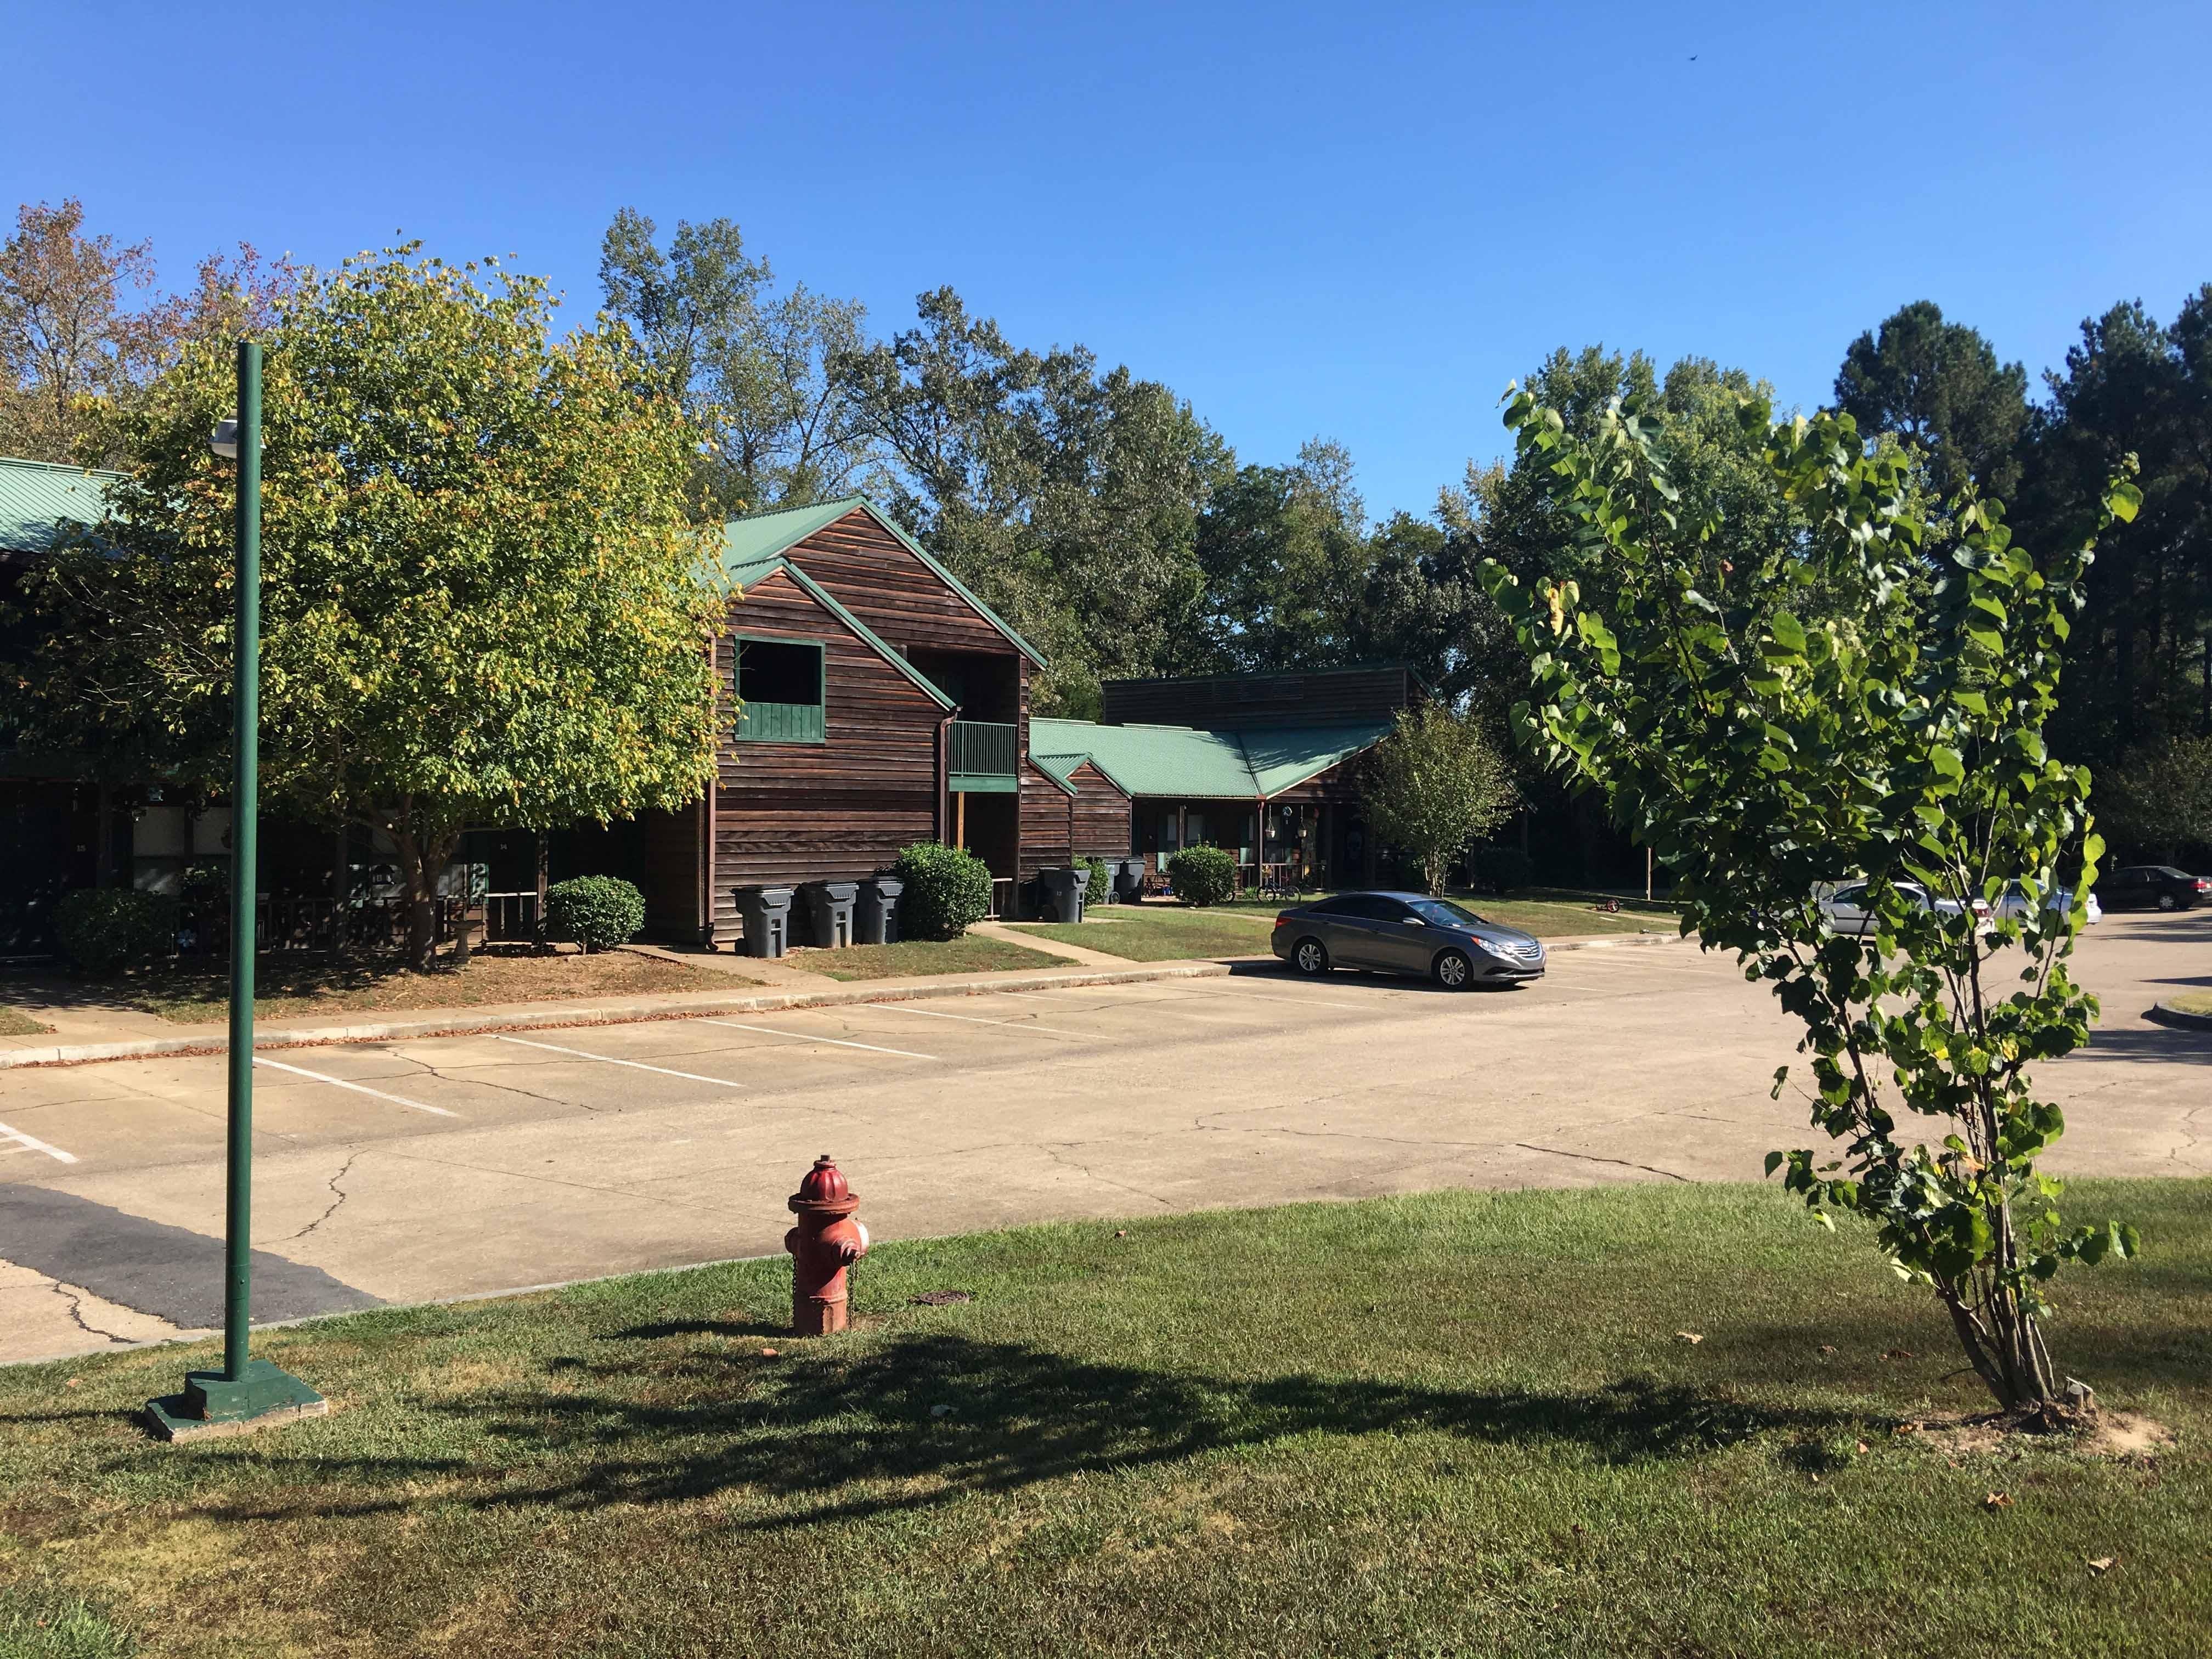 Image of Timberland Apartments in Mountain Pine, Arkansas